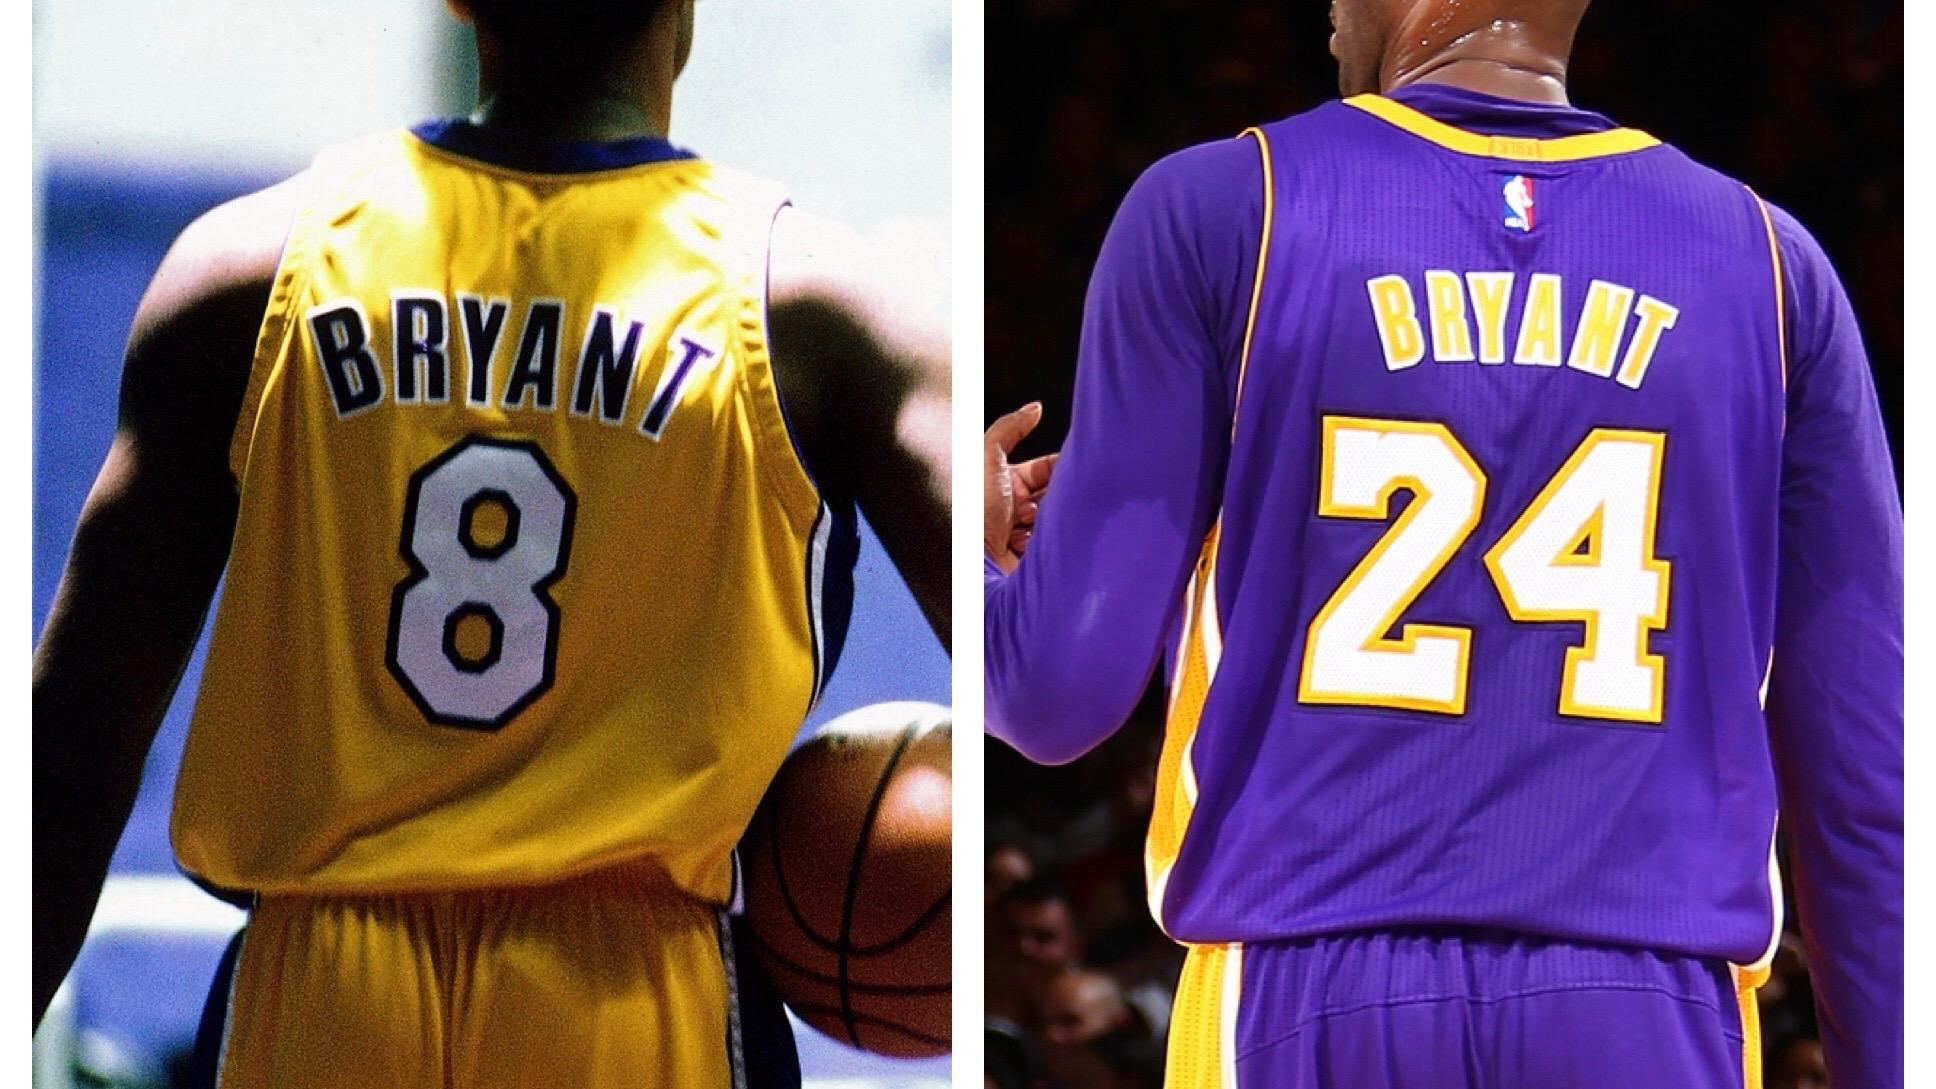 Kobe Bryant: Significance of having both jerseys retired [Video]